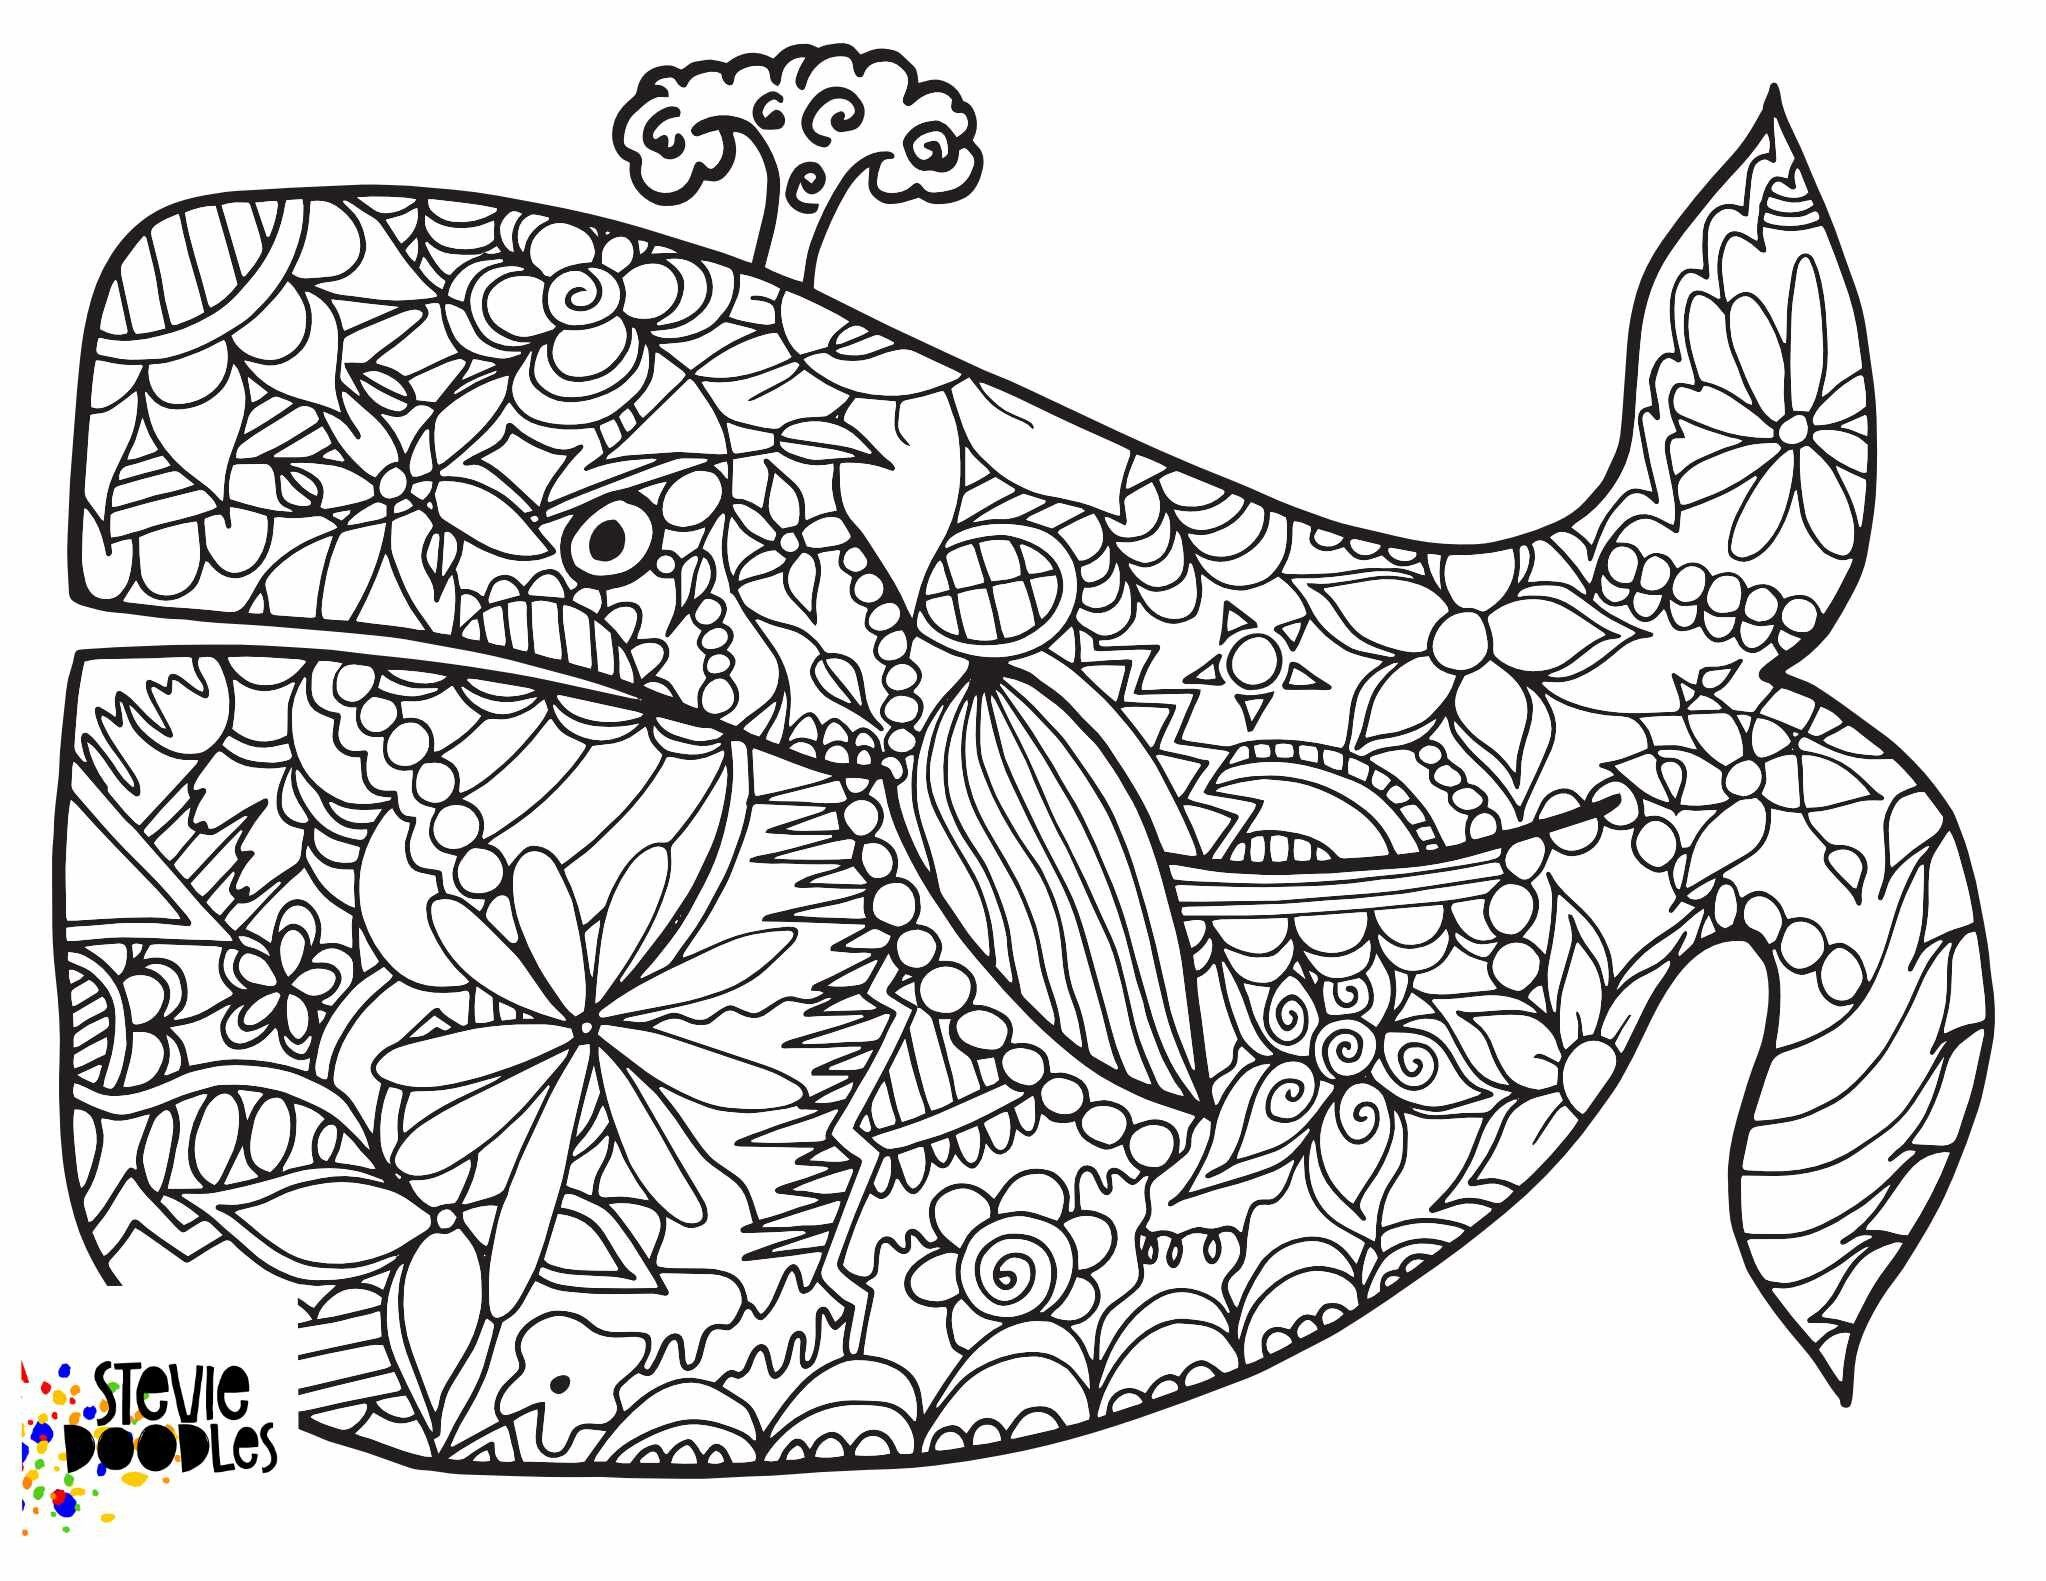 Whale Free Coloring Page Stevie Doodles Whale Coloring Pages Coloring Pages Free Kids Coloring Pages